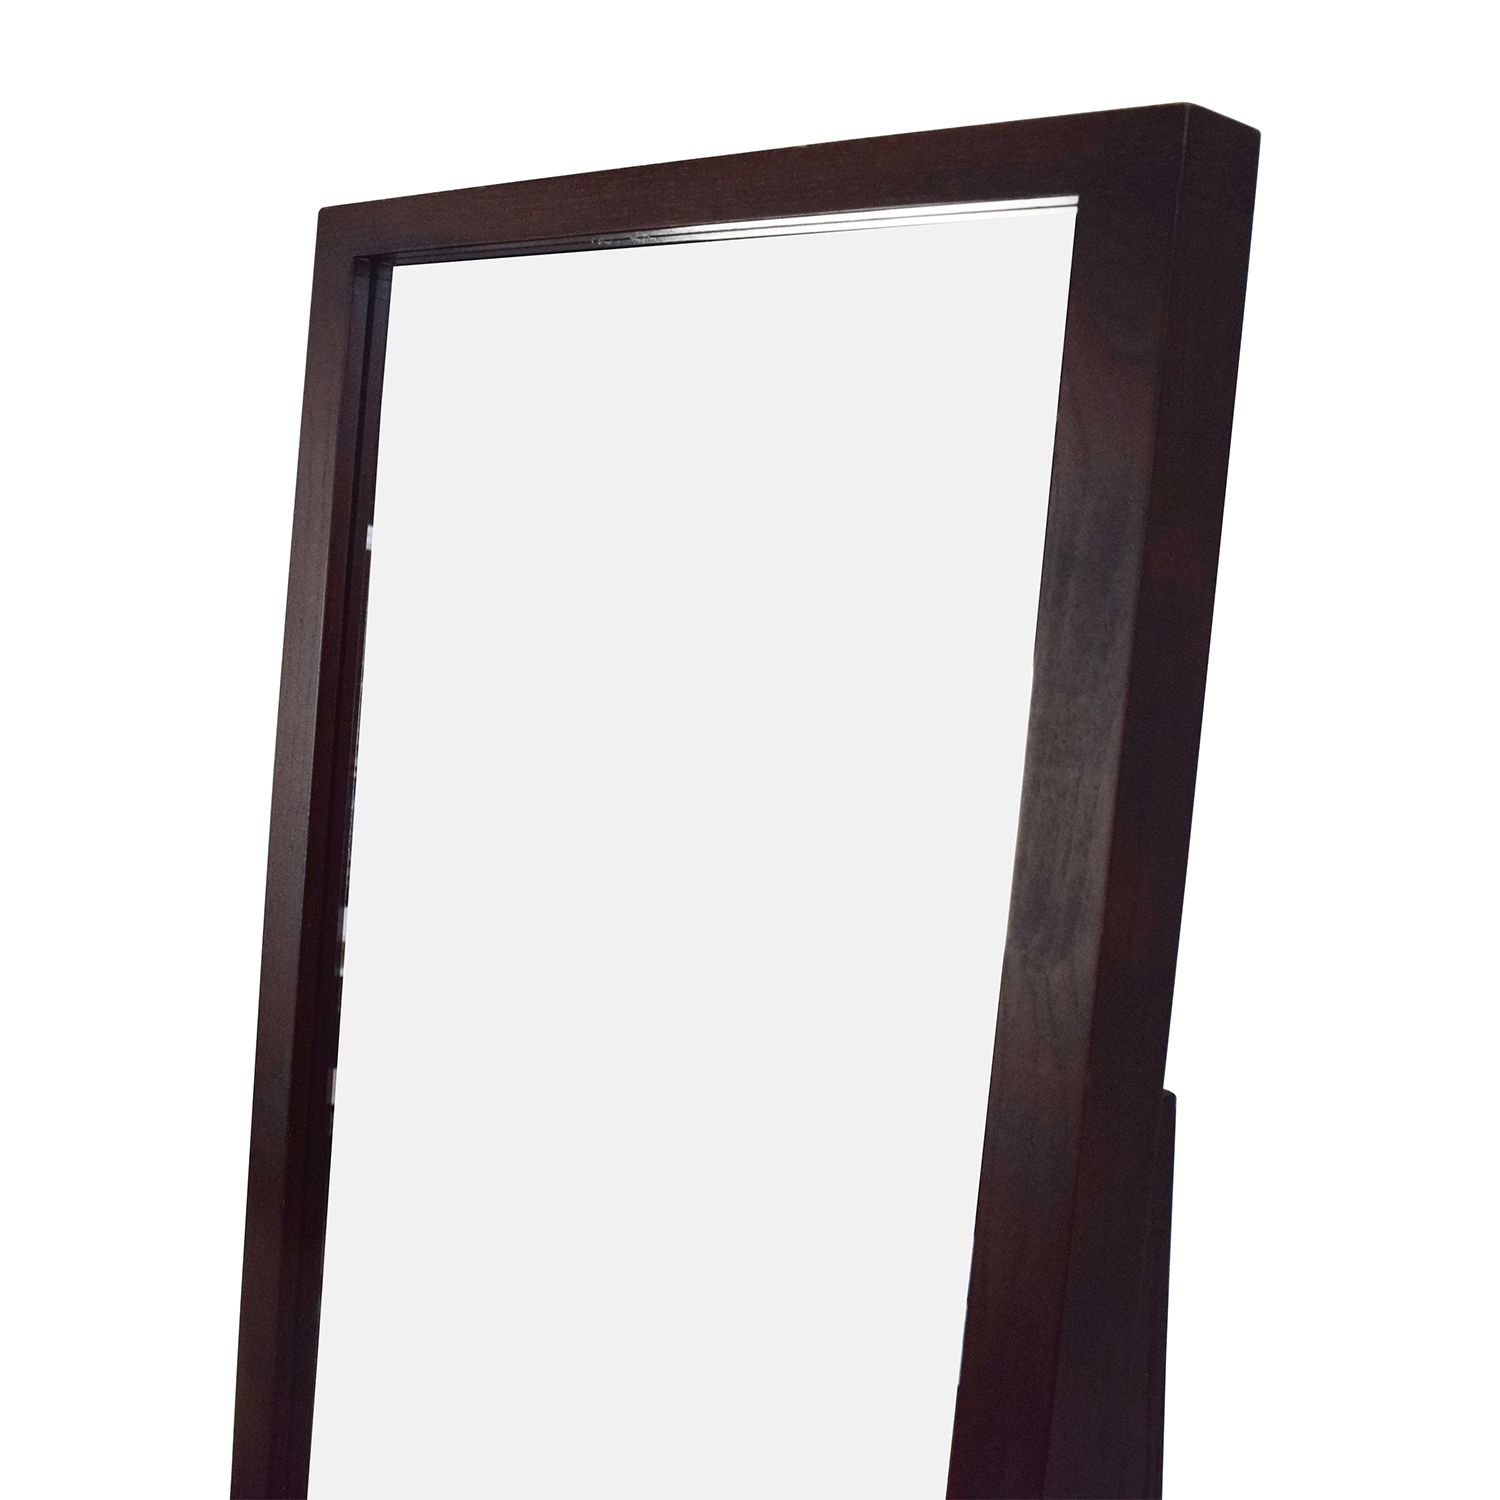 Used Furniture Kitchener Floor Mirror Crate And Barrel 28 Images Maxx Black